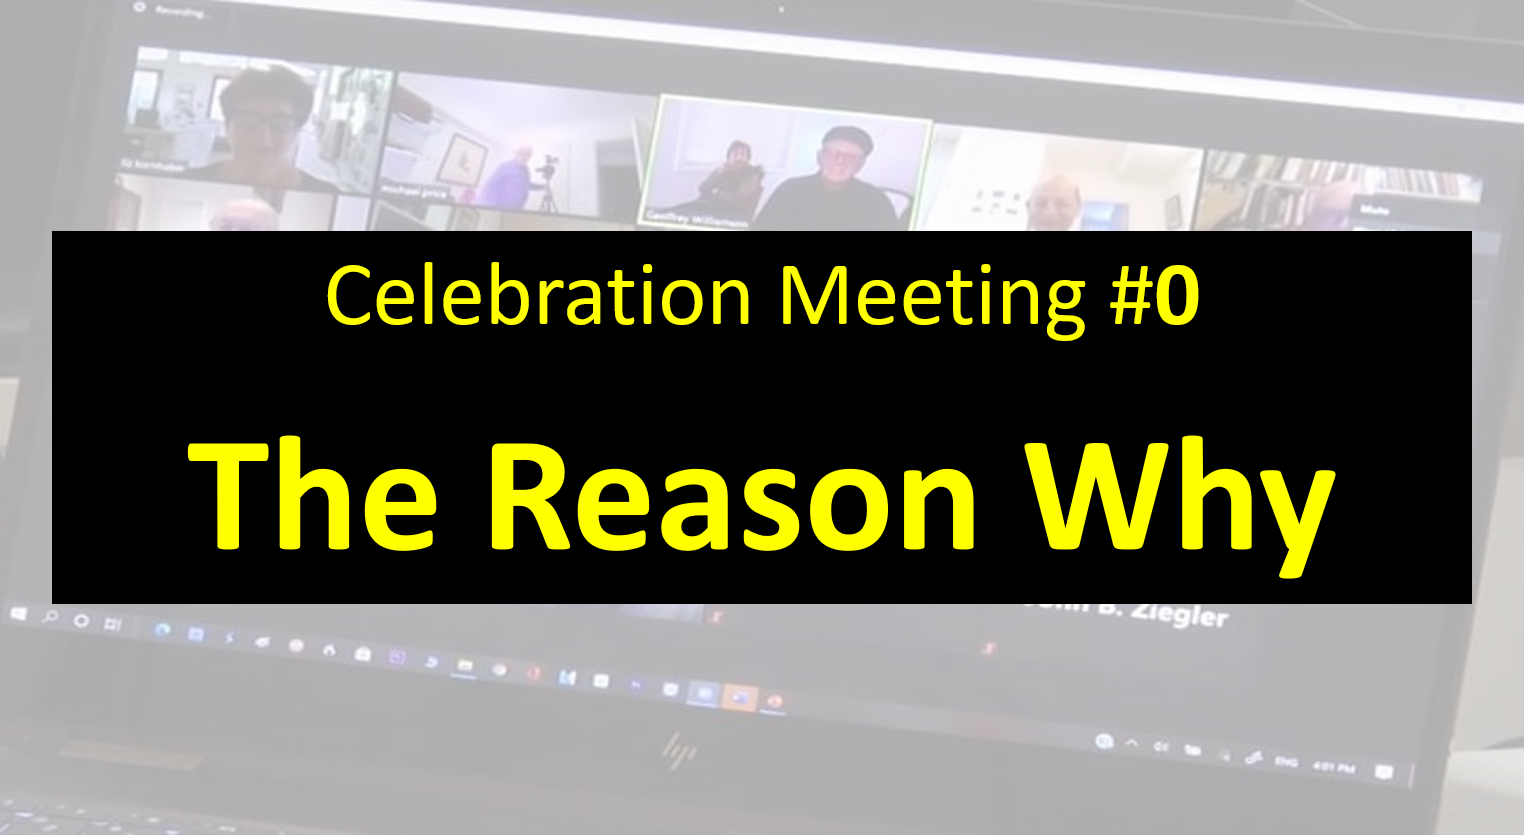 Celebration Meeting - #0 The Reason Why